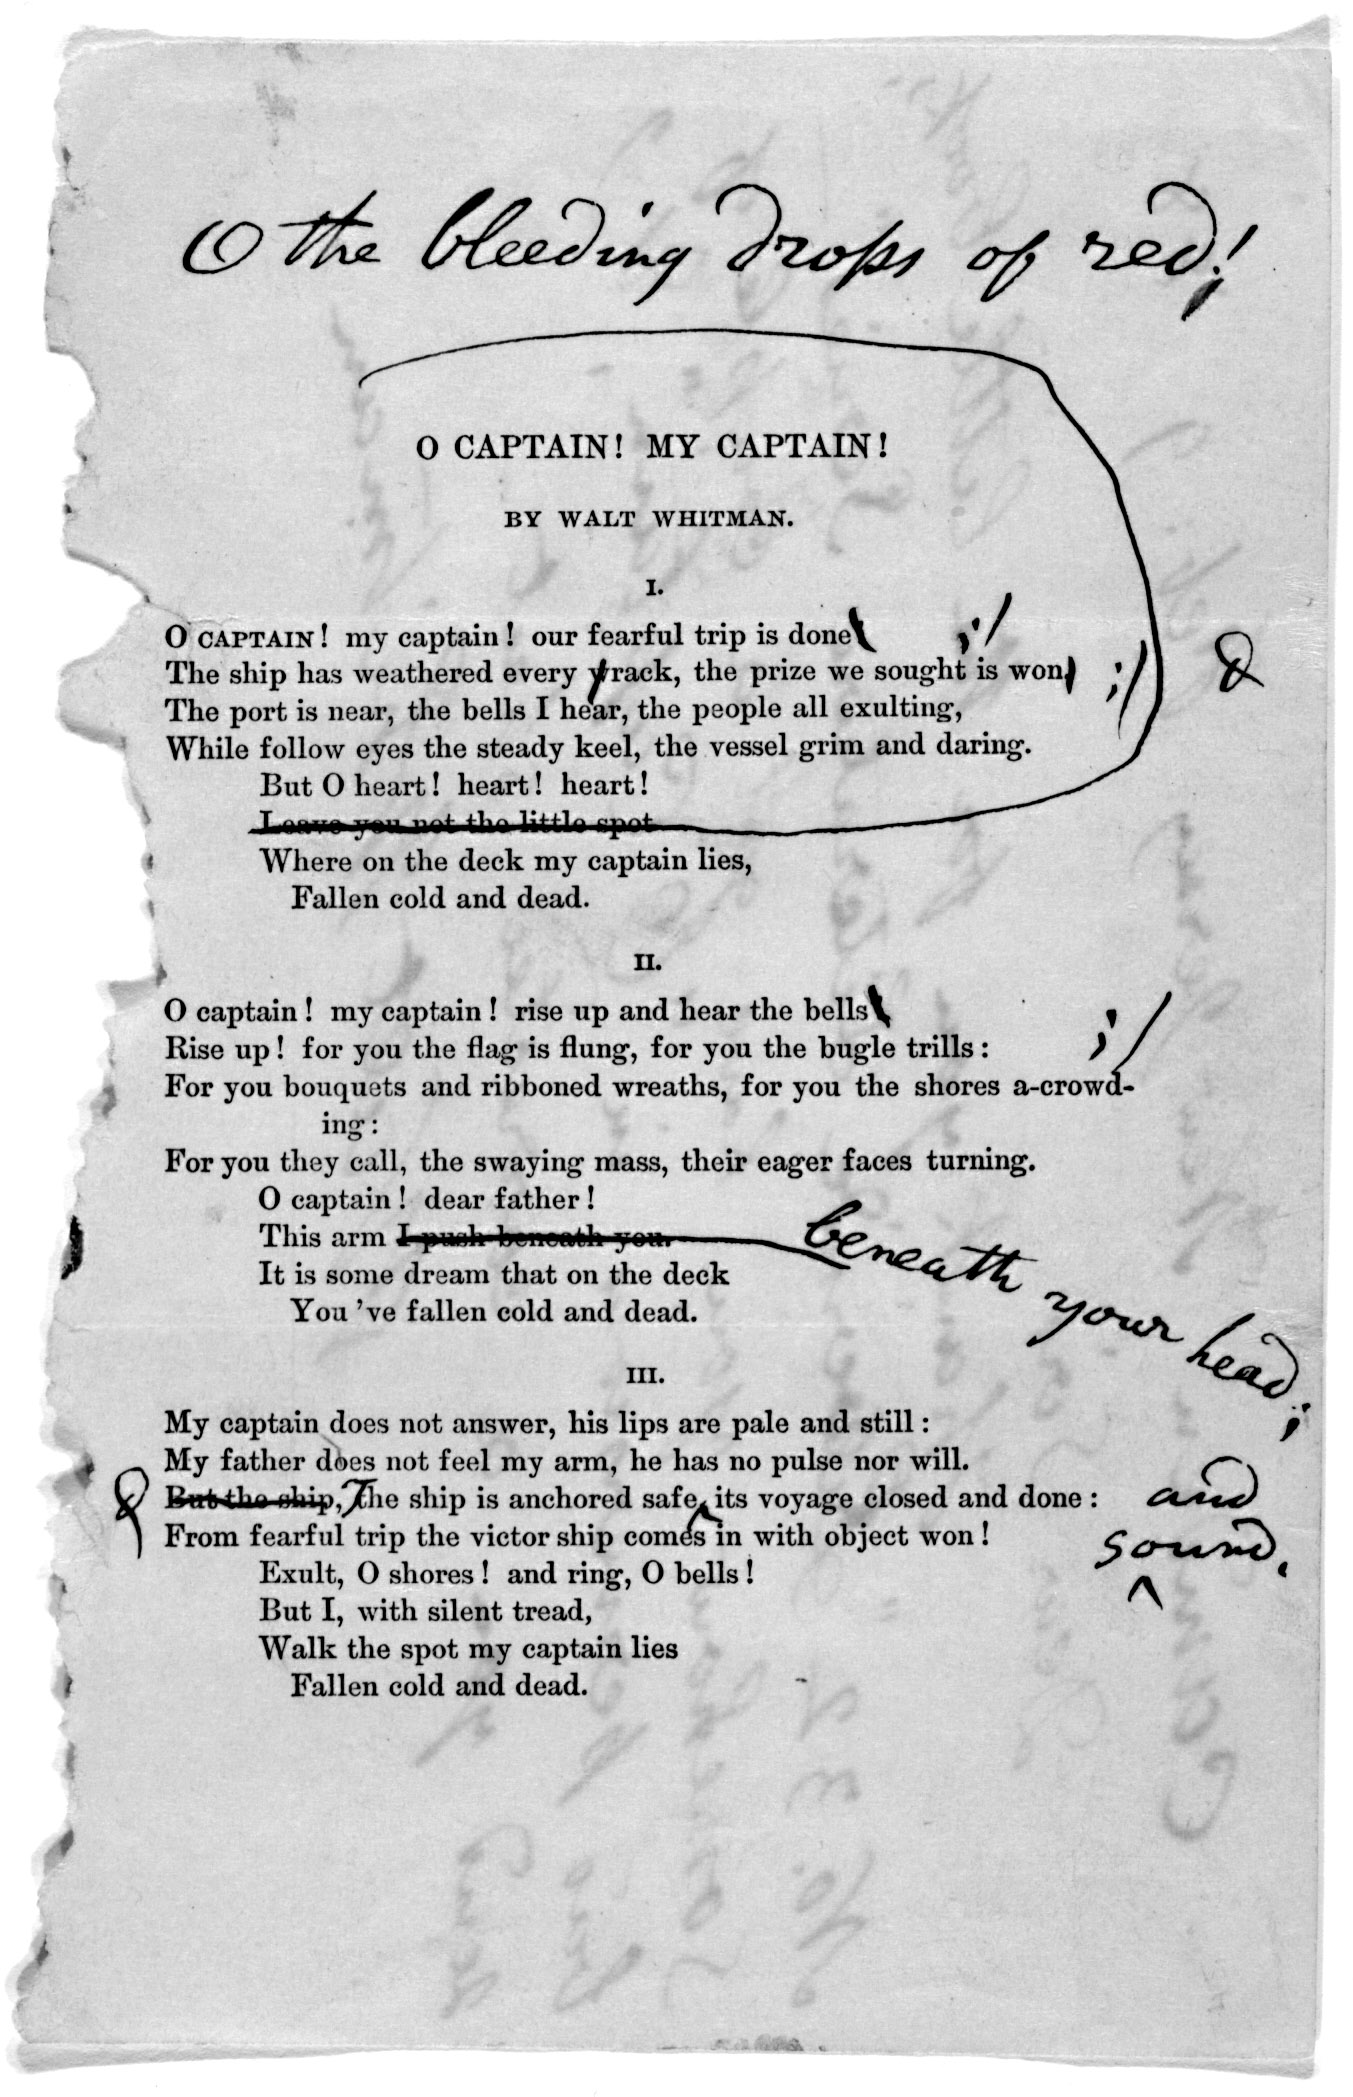 An analysis of the crossing brooklyn ferry record by walt whitman